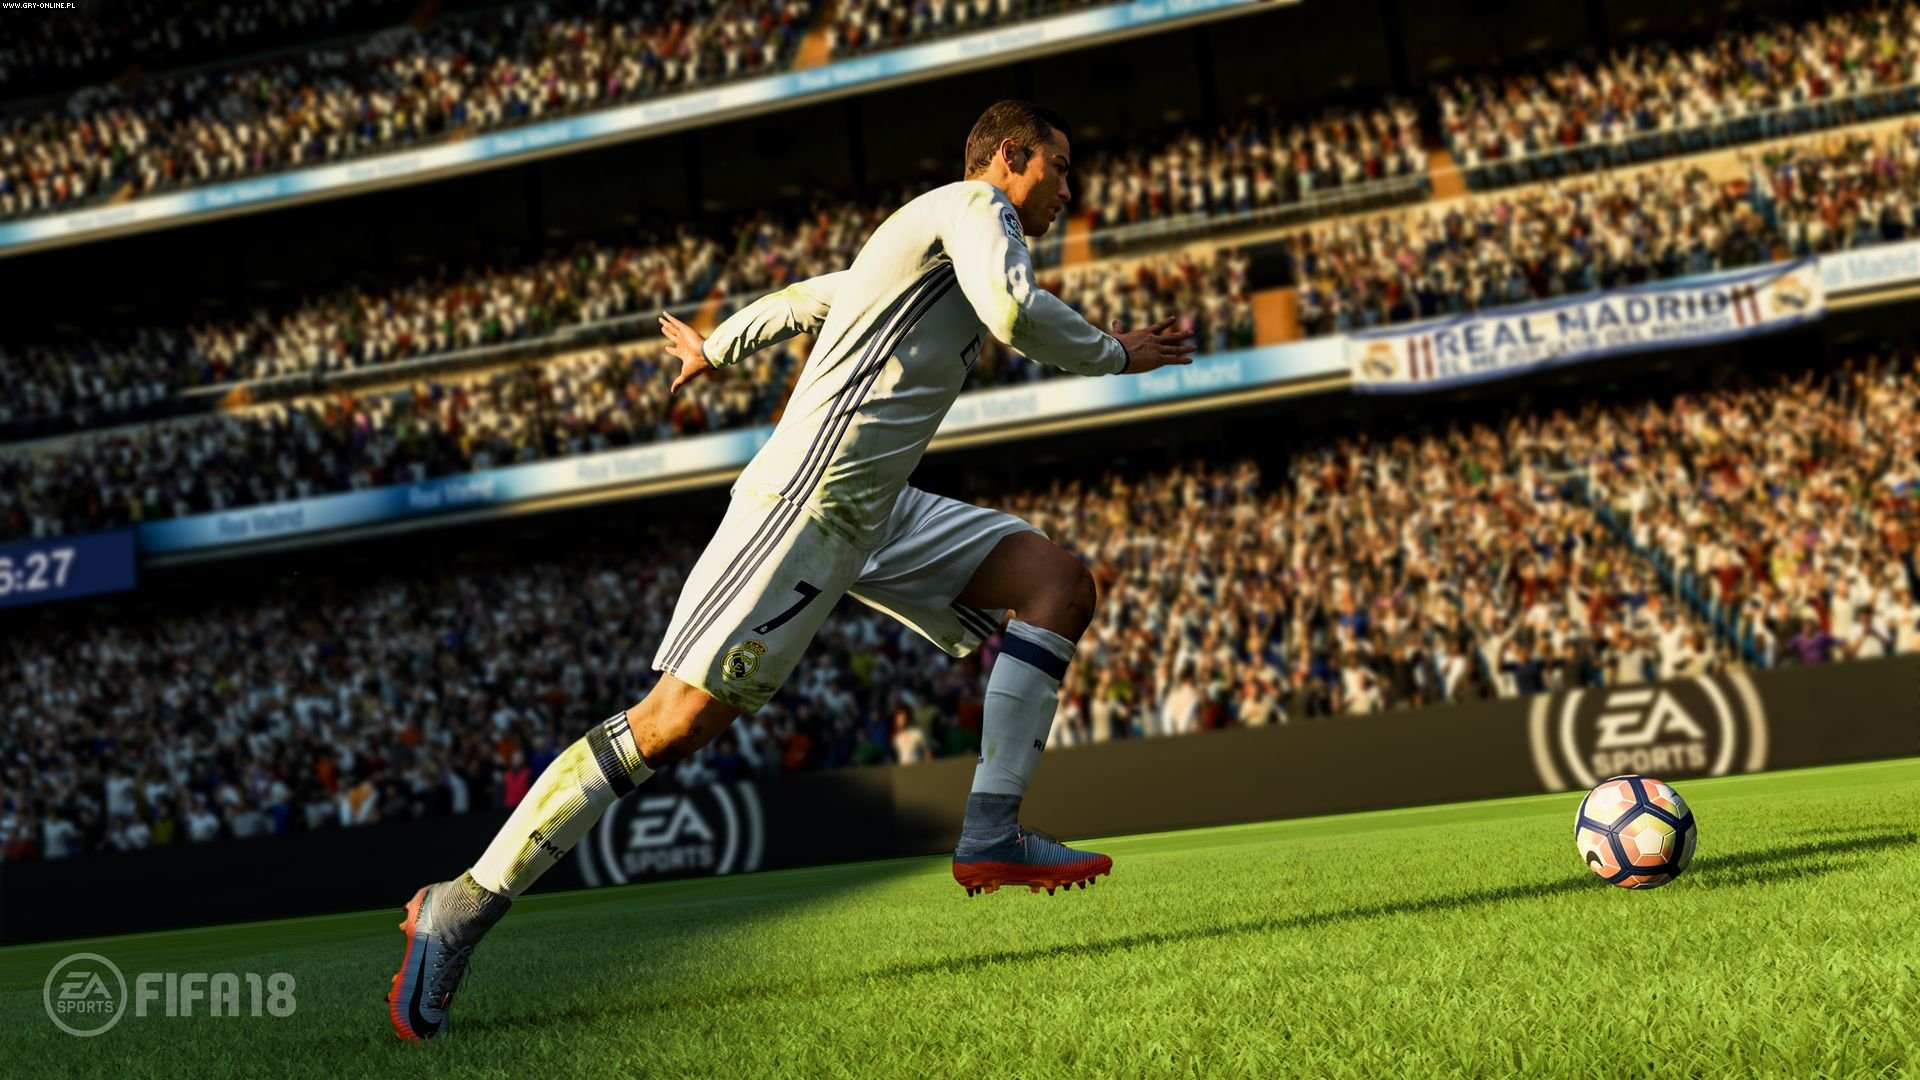 FIFA 18 PC, PS4, XONE Games Image 9/9, EA Sports, Electronic Arts Inc.